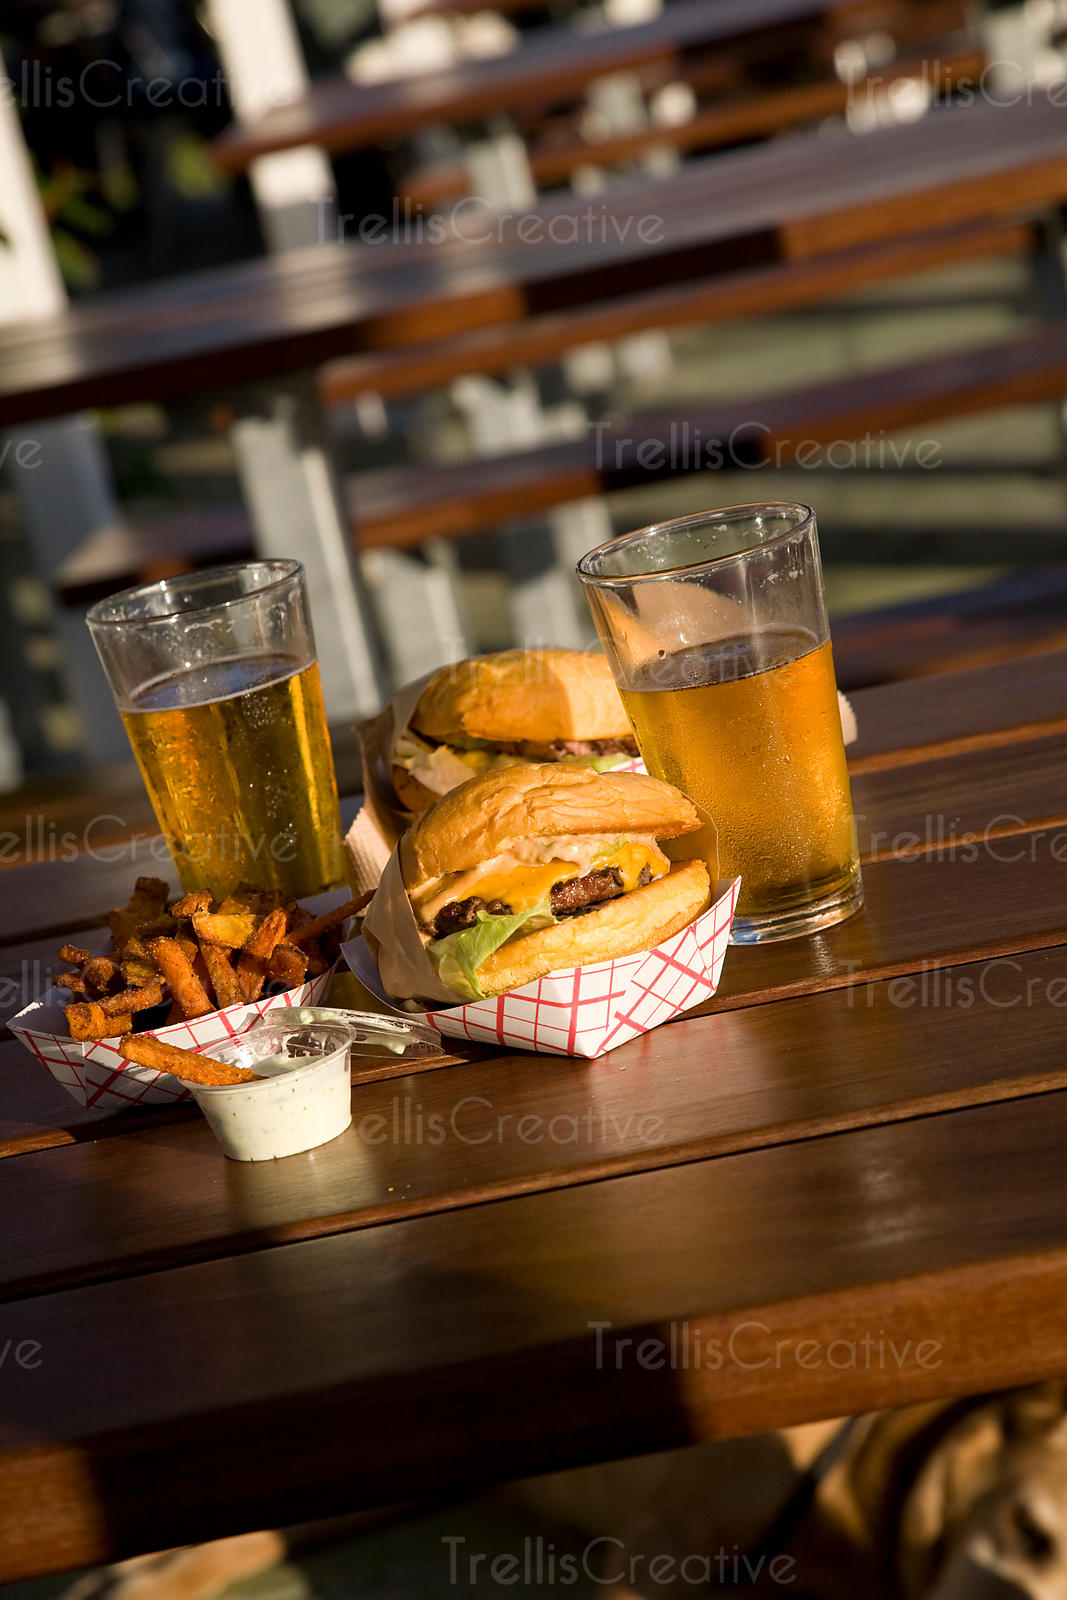 Cheeseburgers, sweet potato french fries and pints of beer on patio table